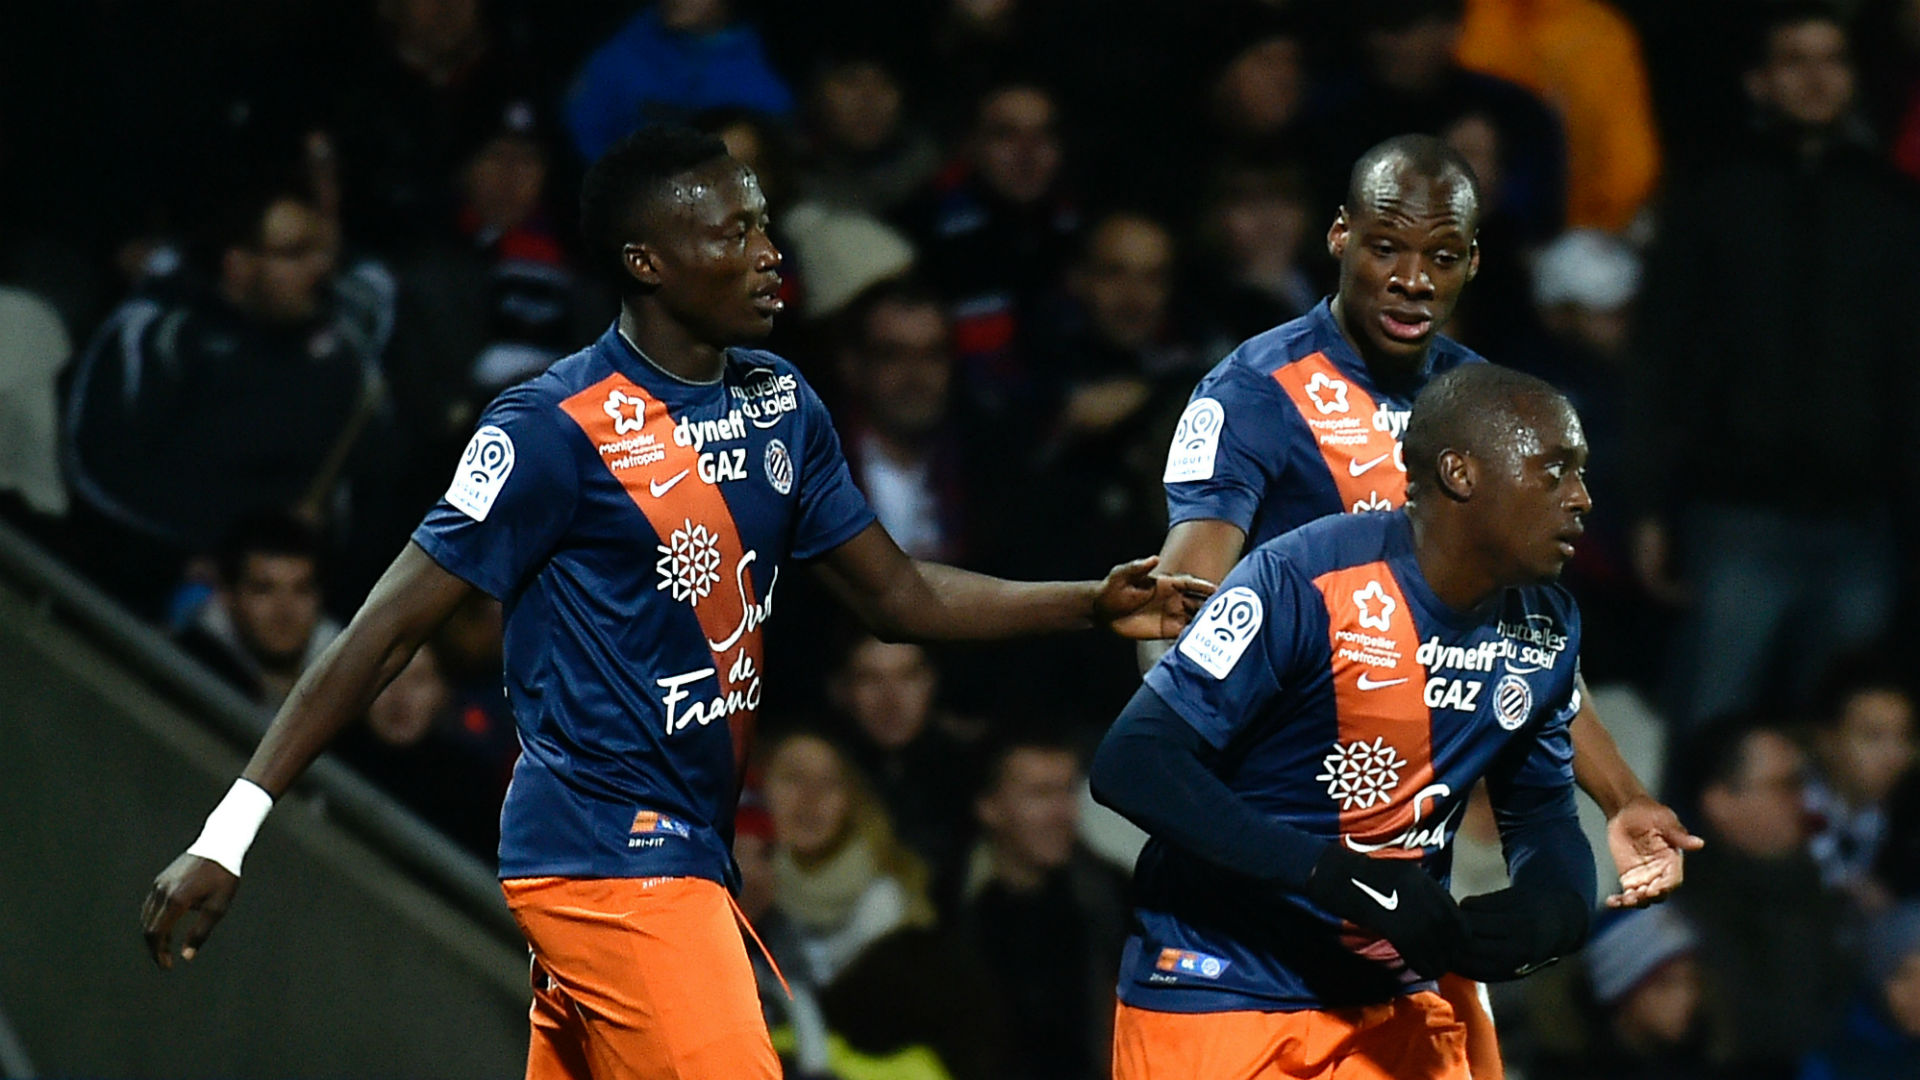 Video: Olympique Lyon vs Montpellier